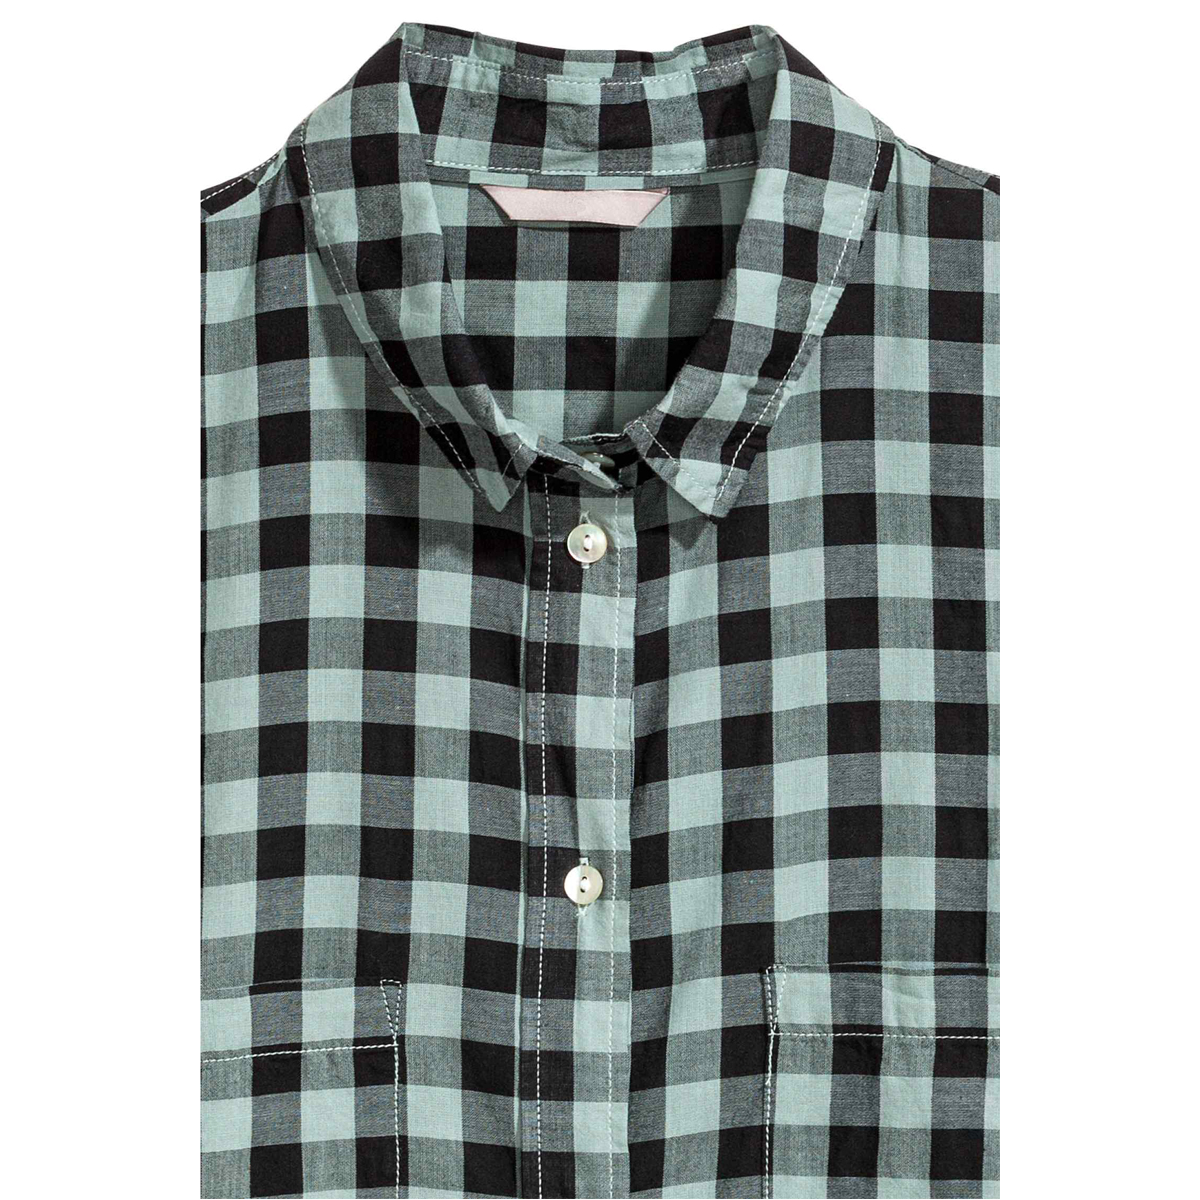 b3491db0631 Lazy KoKo Women Plus Size Button Down Two Pocket Front Shirt Turn Down  Collar Plaid Basic Shirt Large Size Casual Loose Shirt-in Blouses   Shirts  from ...